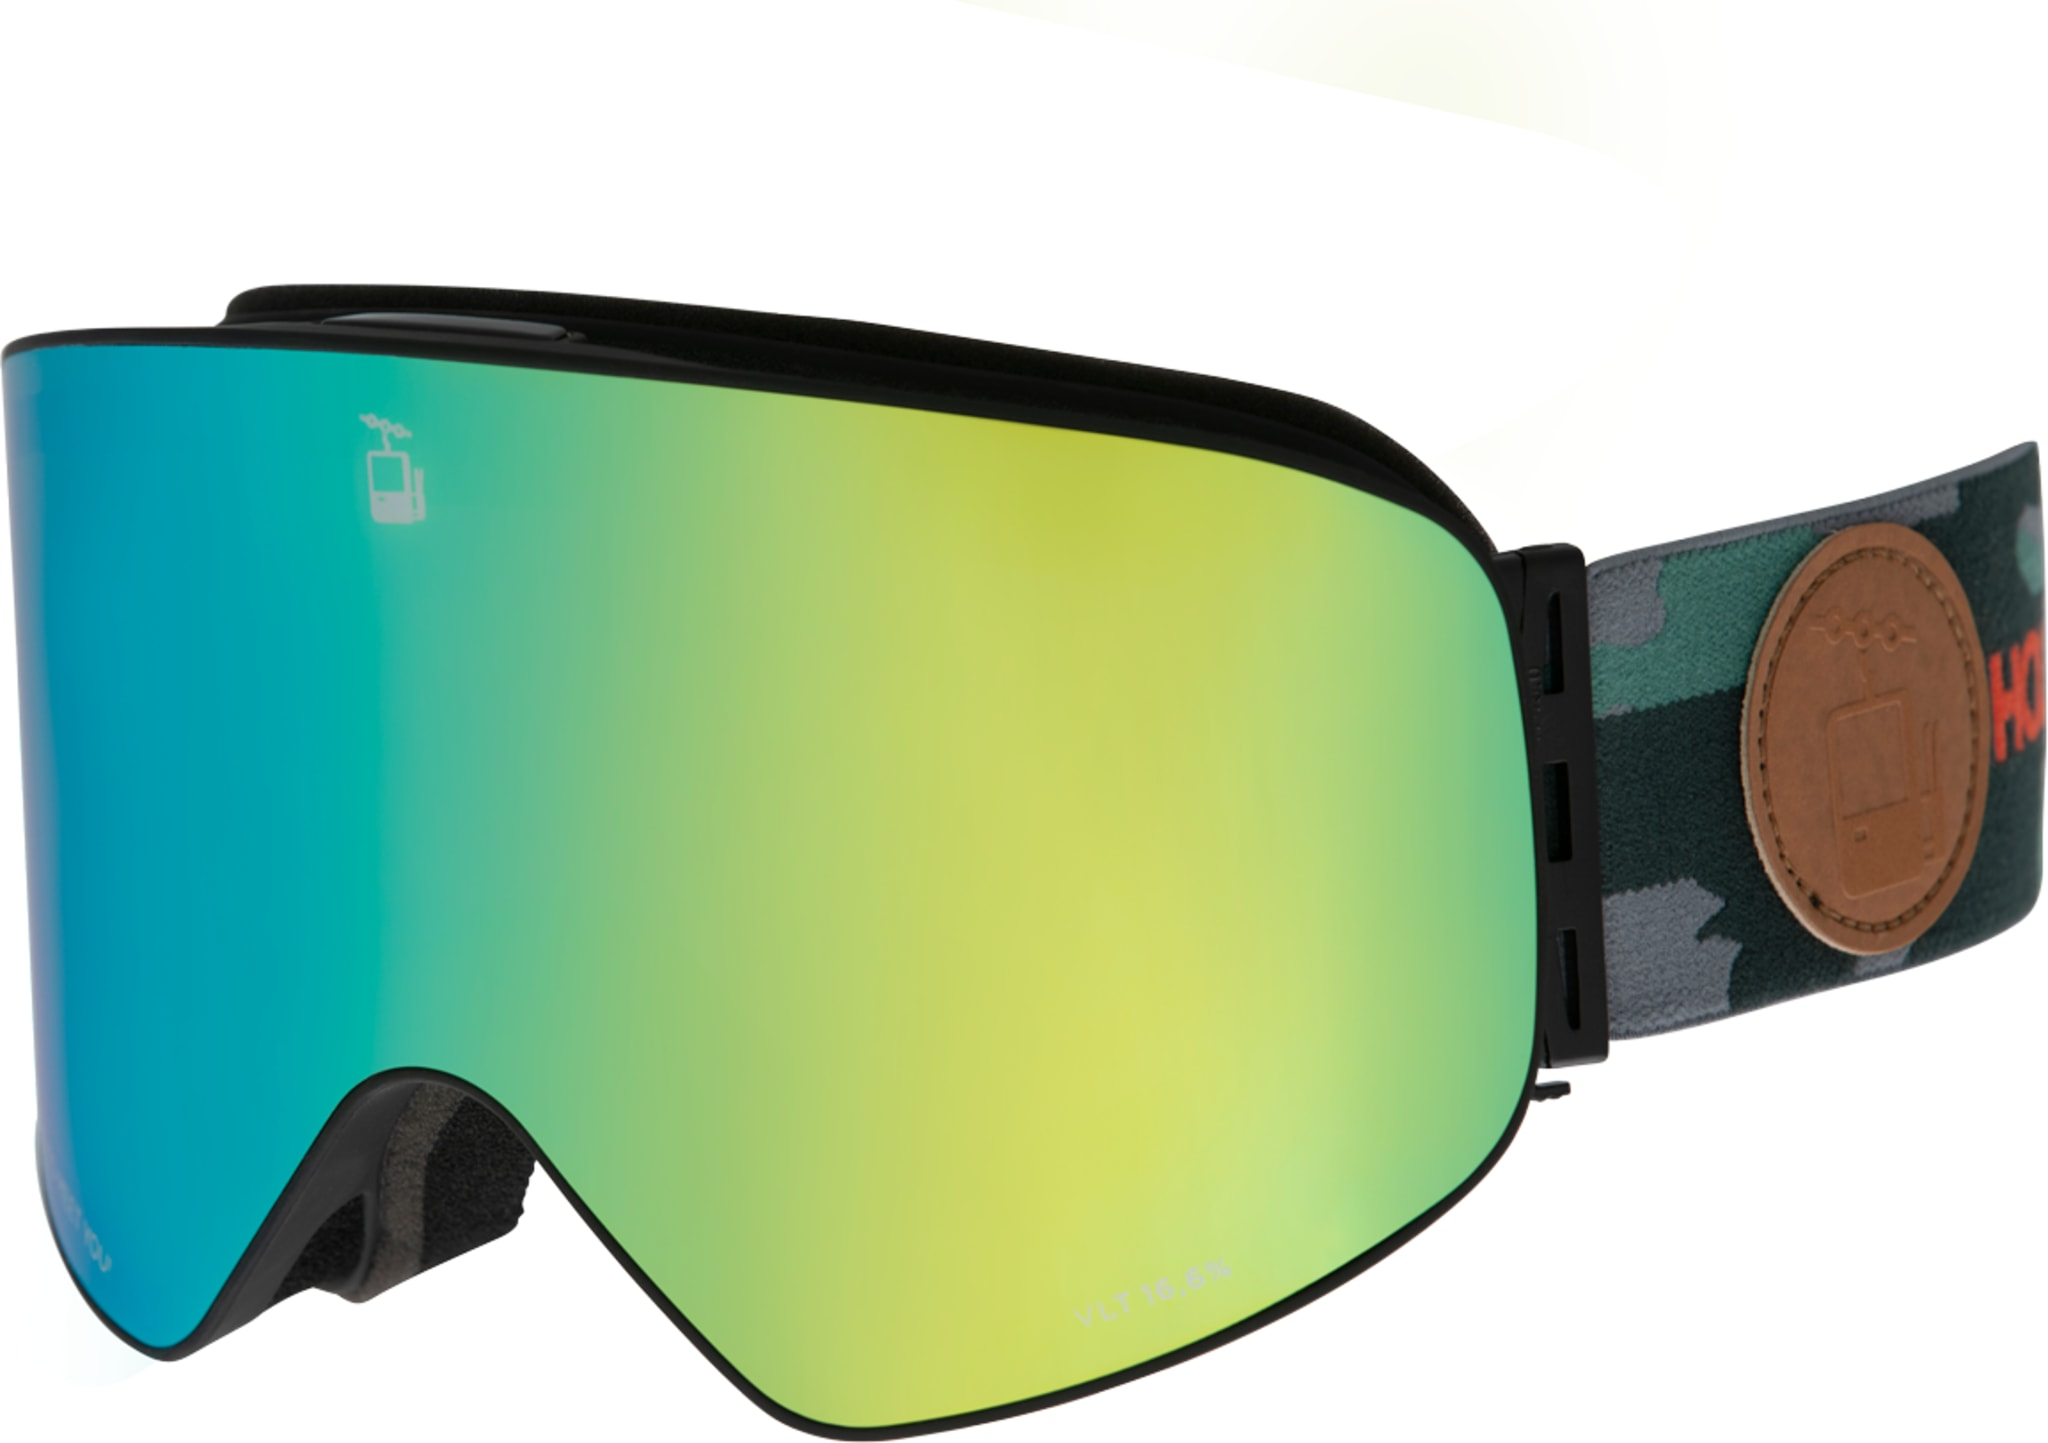 Outlaw Goggles Premium pack